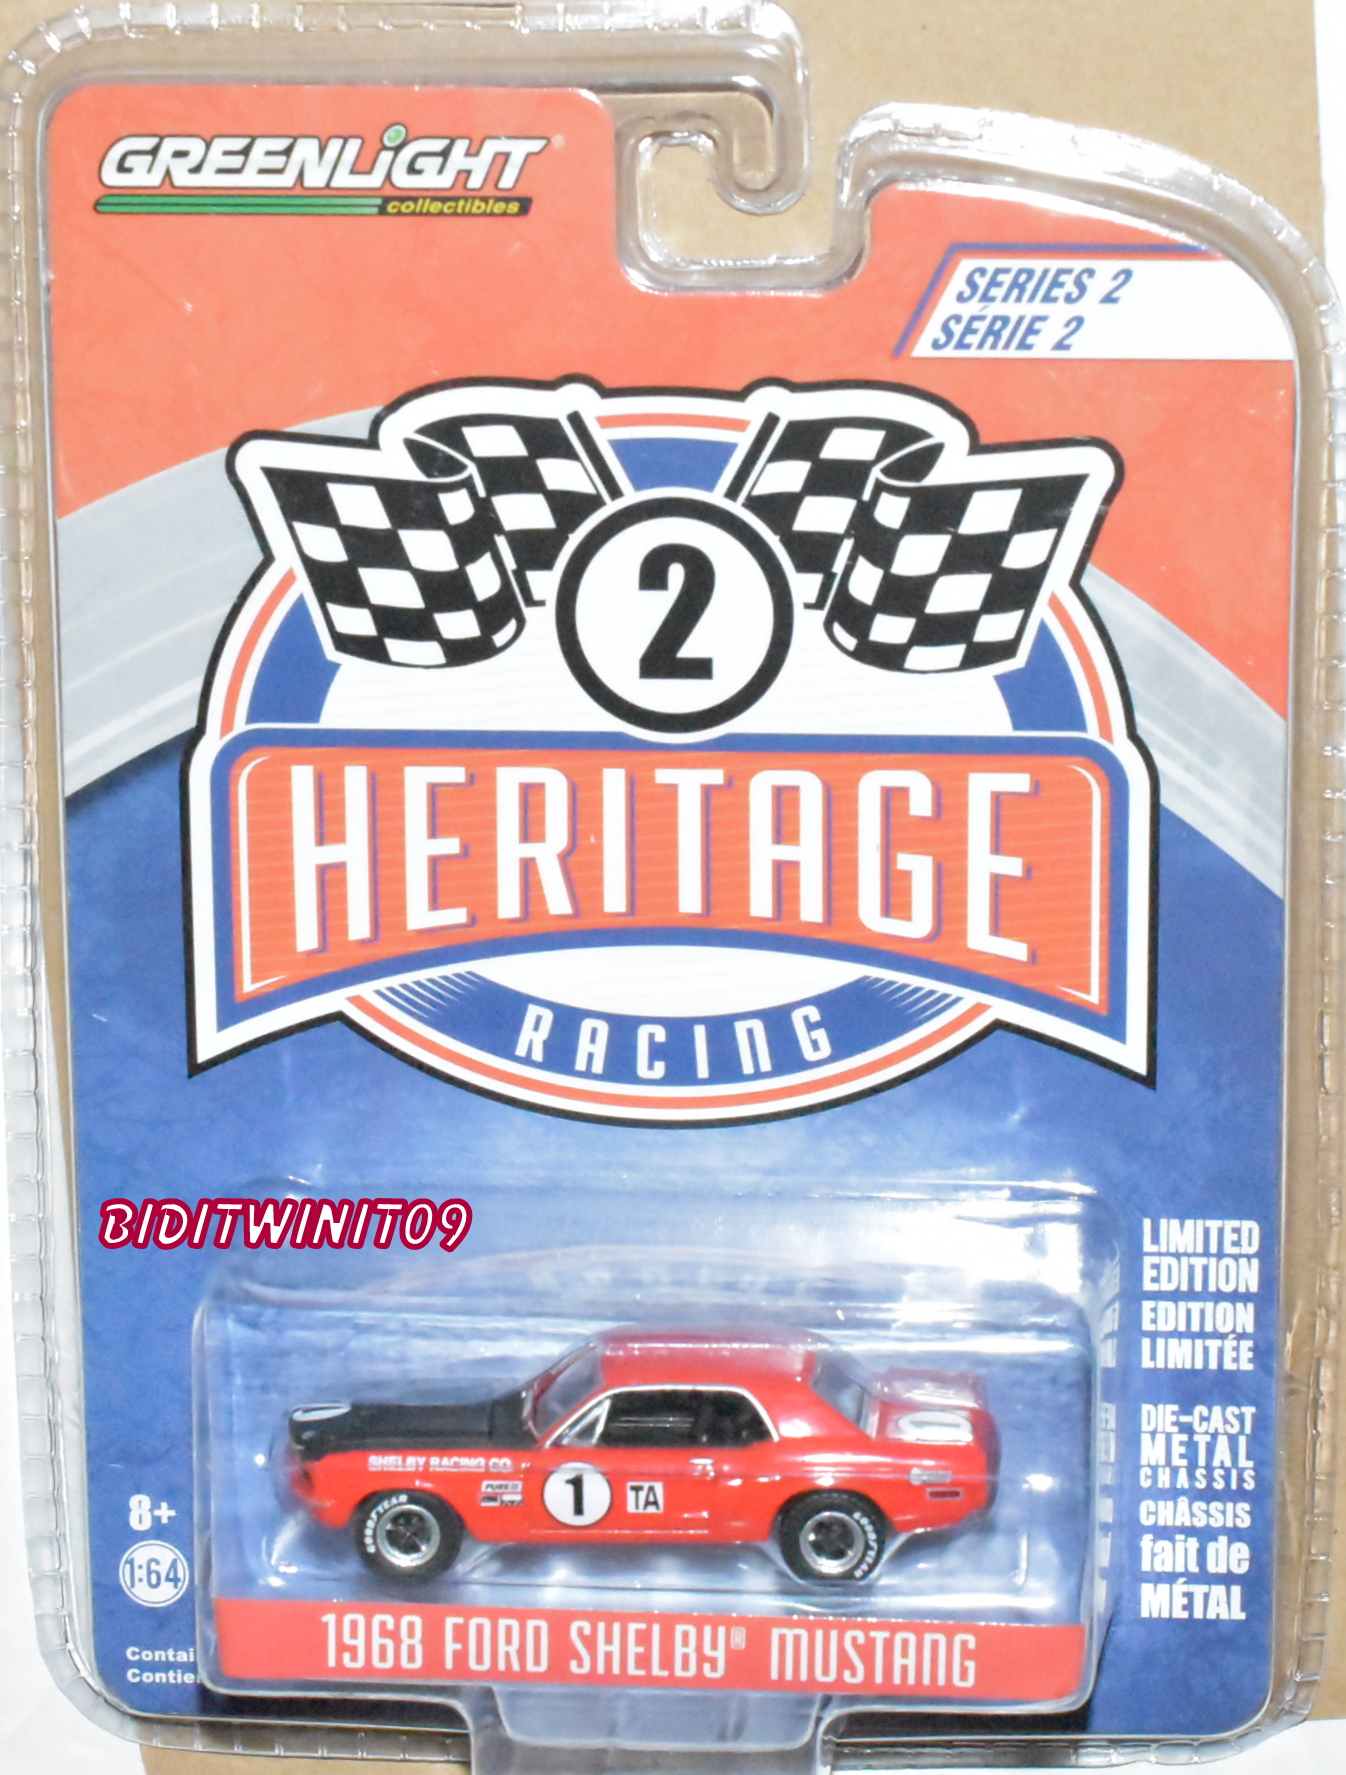 GREENLIGHT 2018 HERITAGE RACING 1968 FORD SHELBY MUSTANG SERIES 2